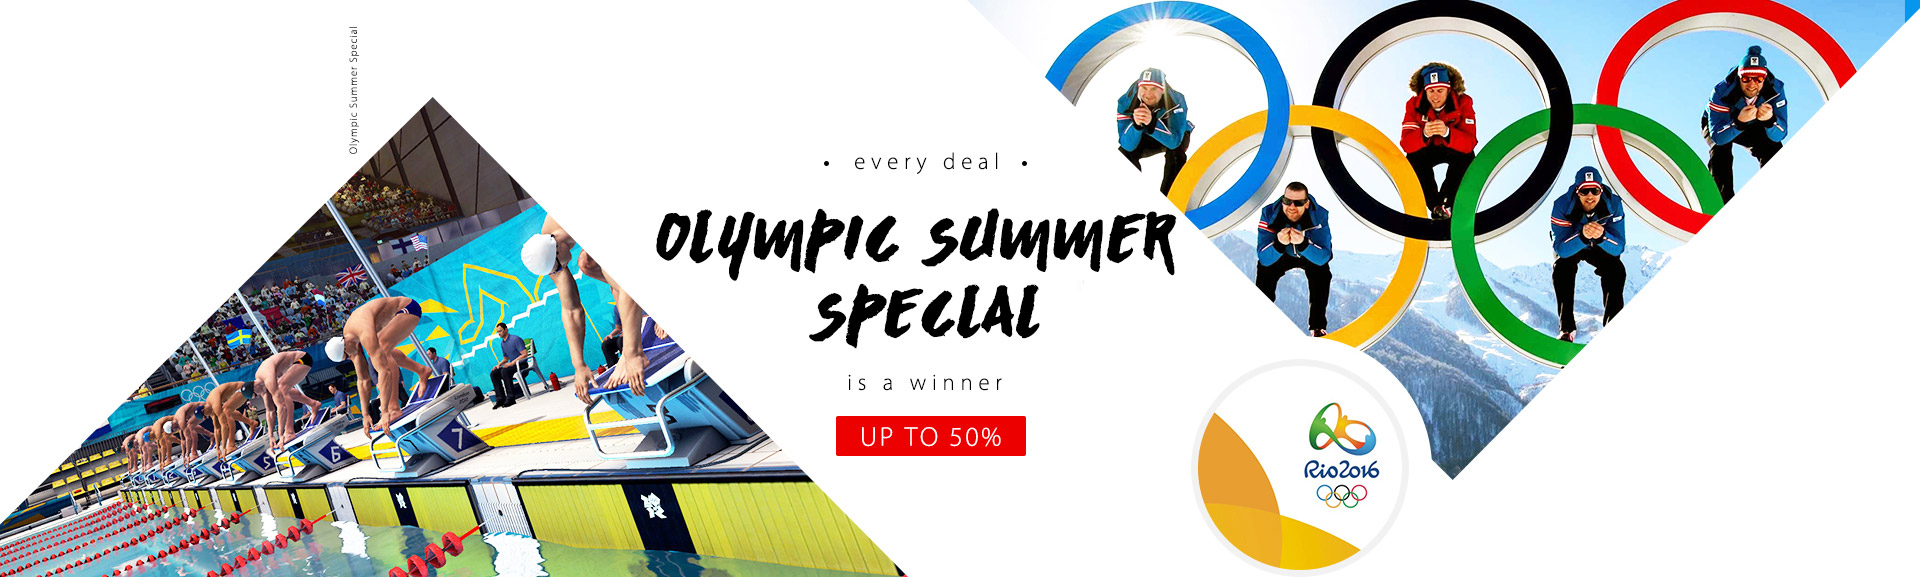 http://uidesign.gearbest.com/GB/images/promotion/2016/olympicsummer/banner1.jpg